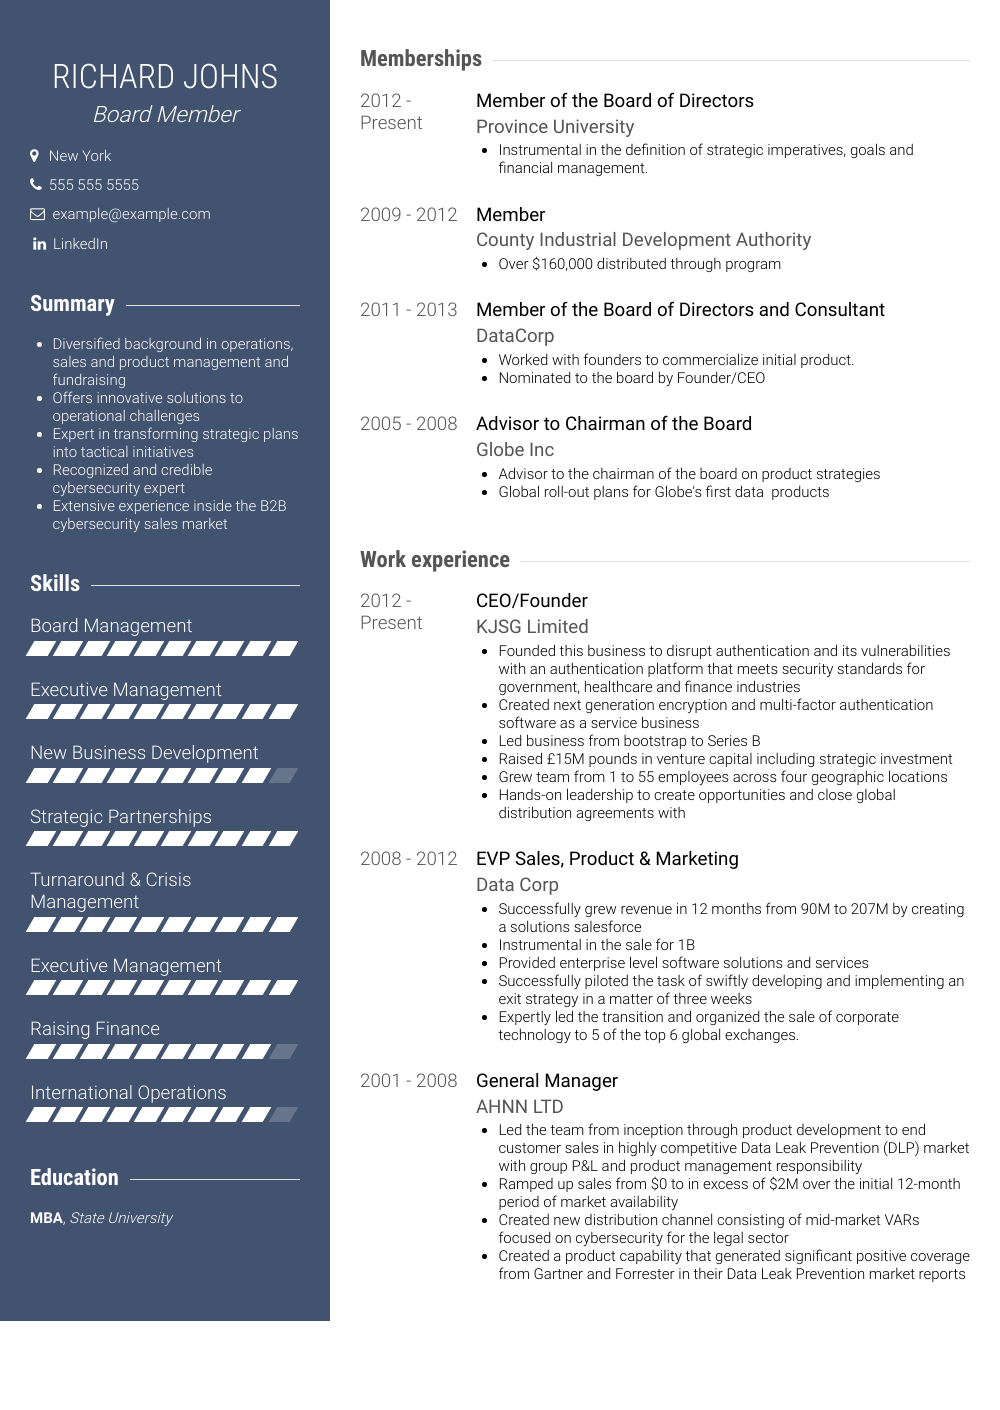 Board Member Resume Sample